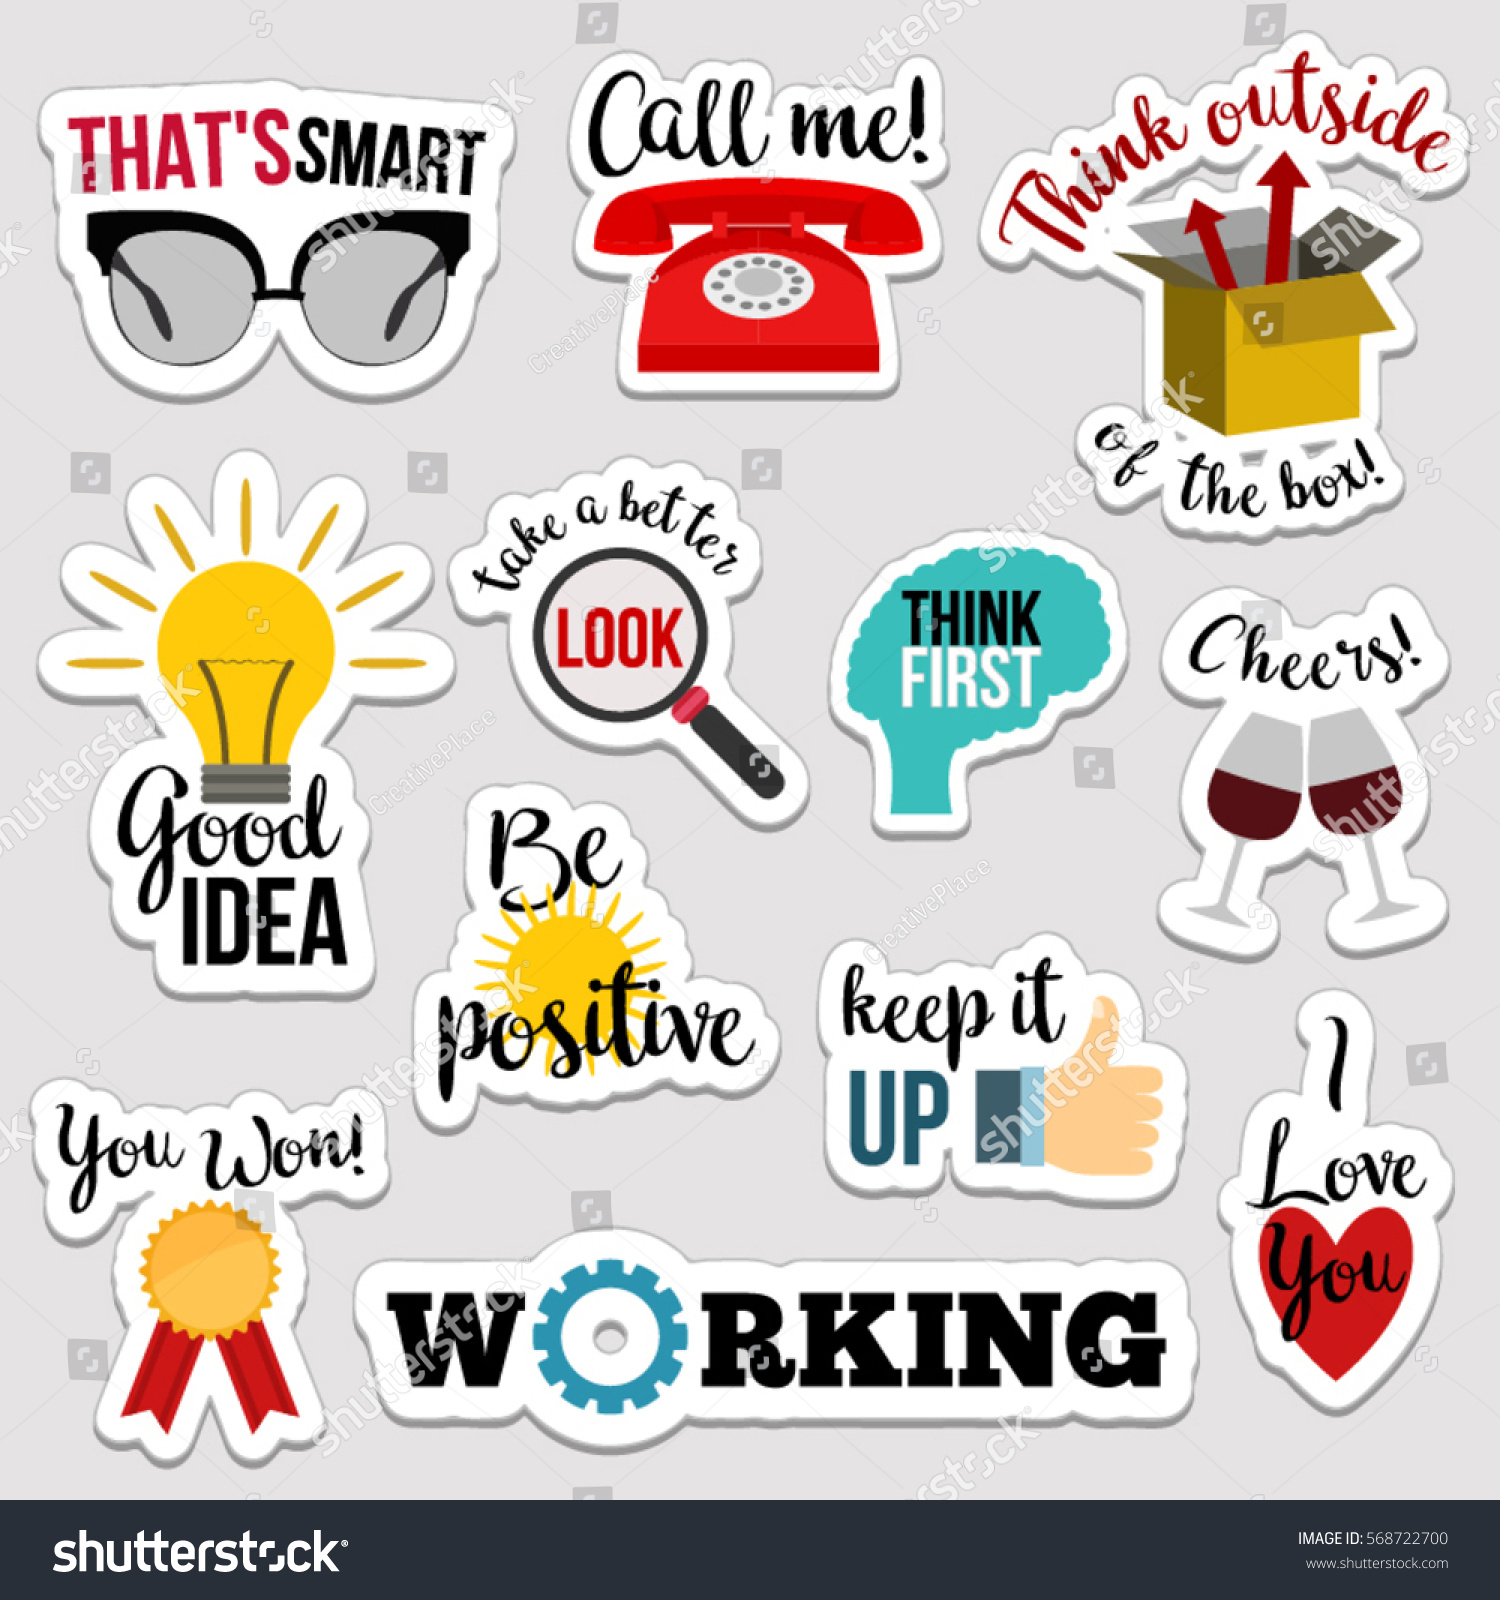 Set of flat design social network stickers with notes. Vector illustrations for online communication, networking, social media, chat, web design, mobile message, marketing material. #568722700